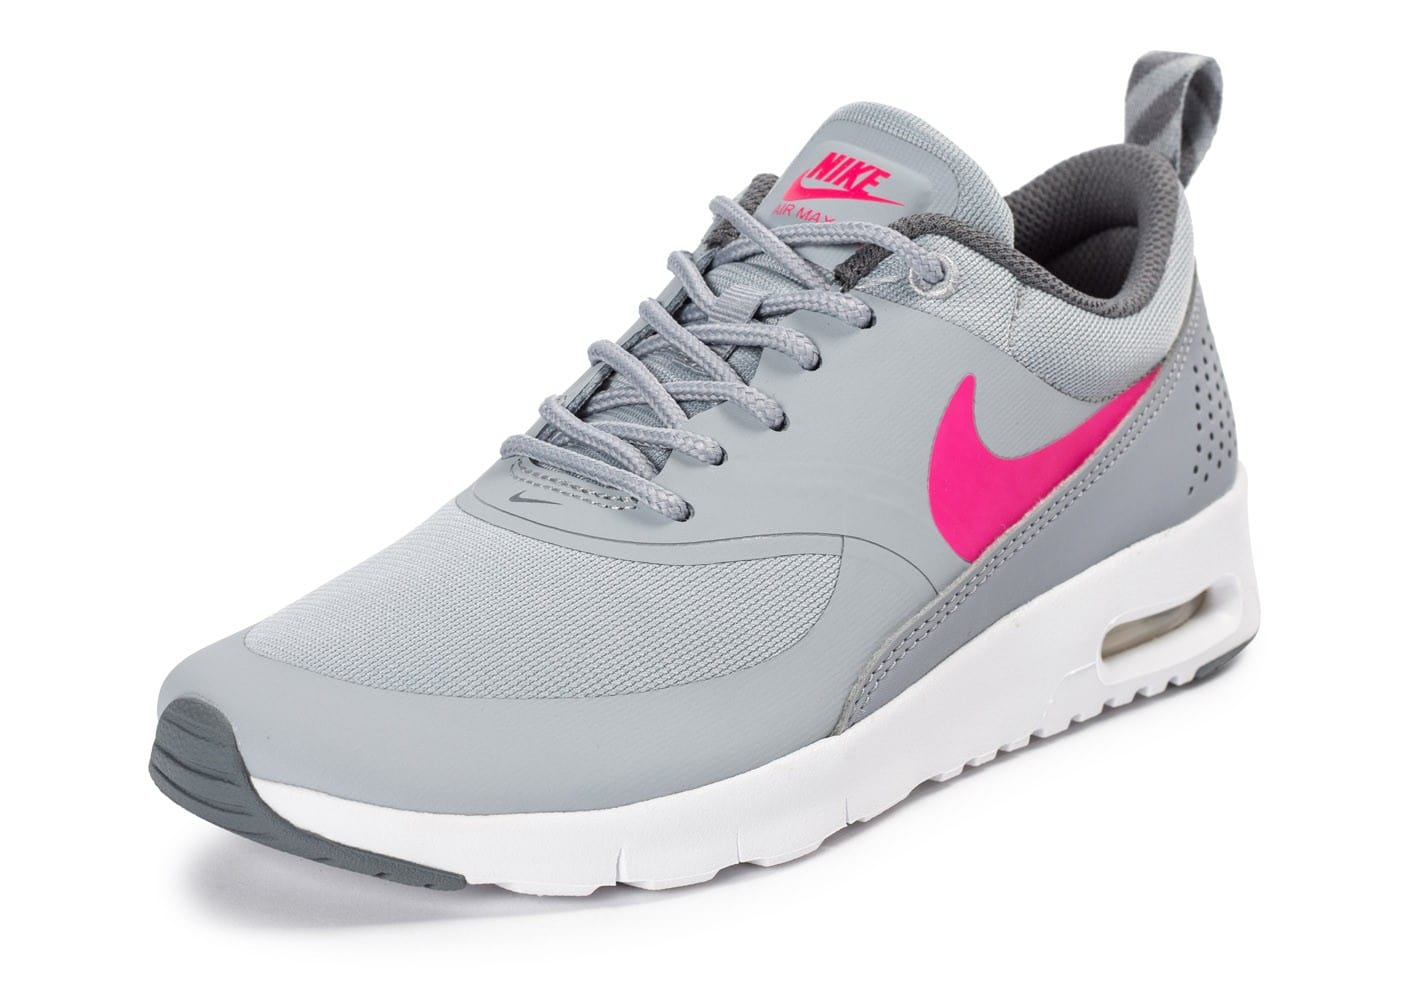 timeless design 8596d c9e8b ... Chaussures Nike Air Max Thea Junior grise et rose vue avant ...